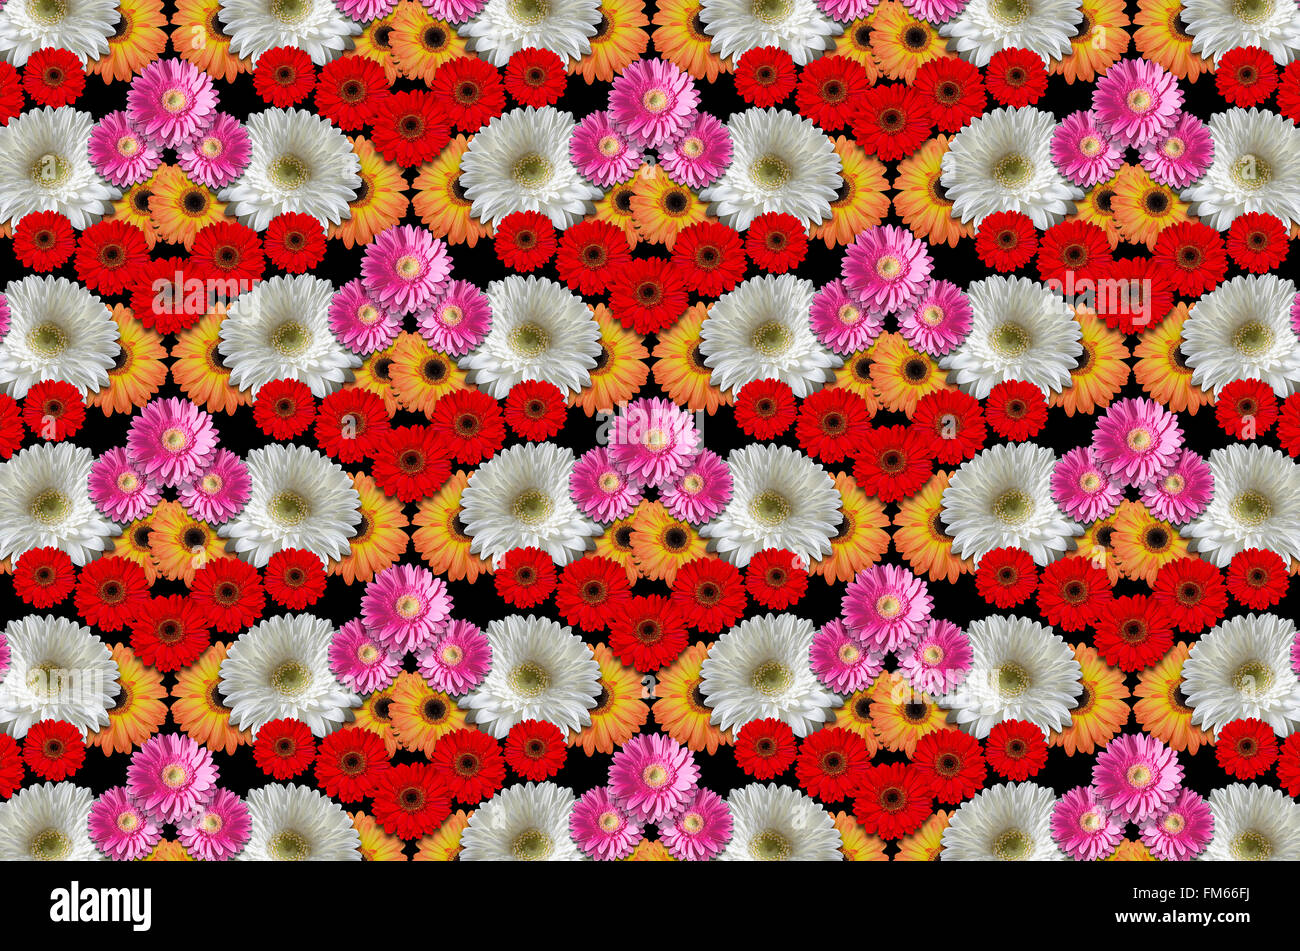 Multi colored flowers large daisies on a black background Stock ...